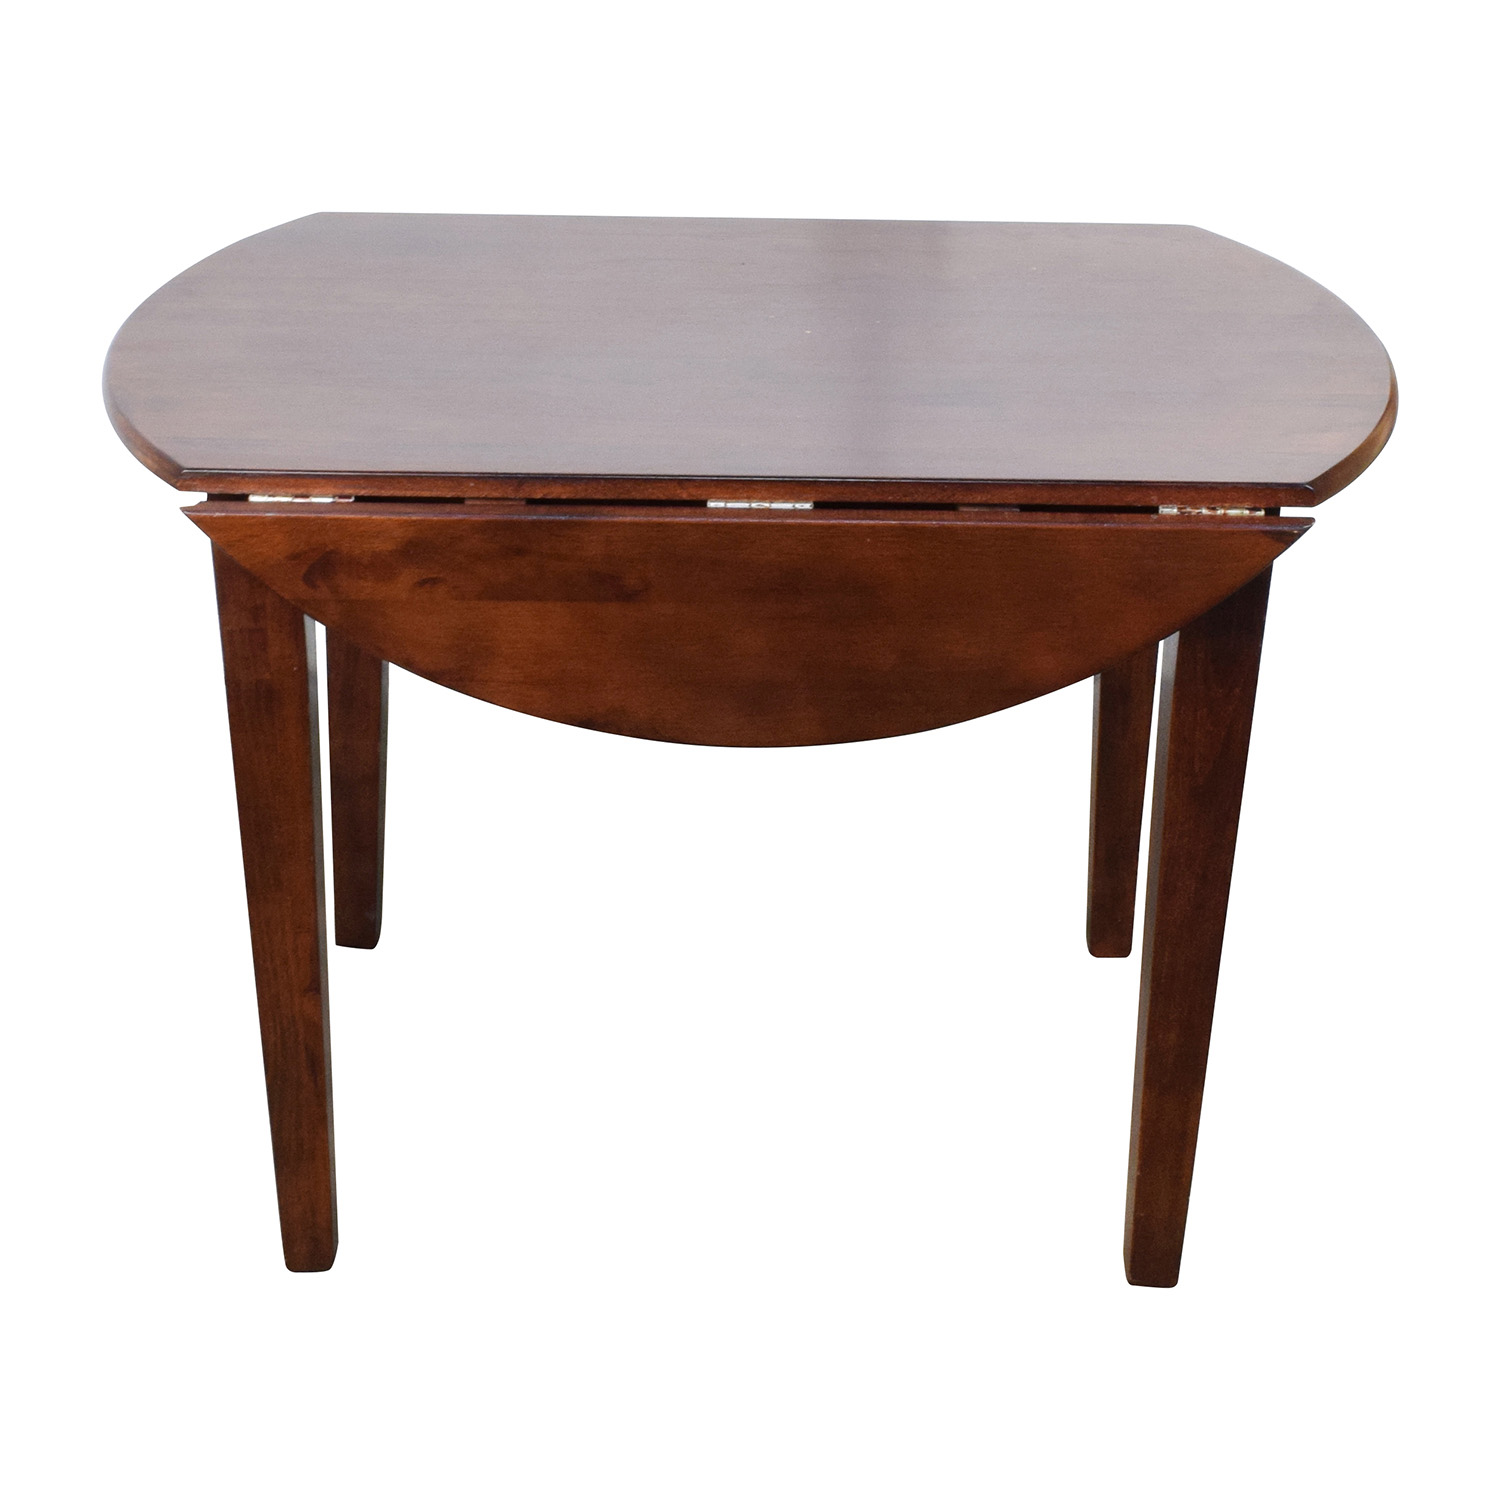 Round Wood Table with Folding Leaves used